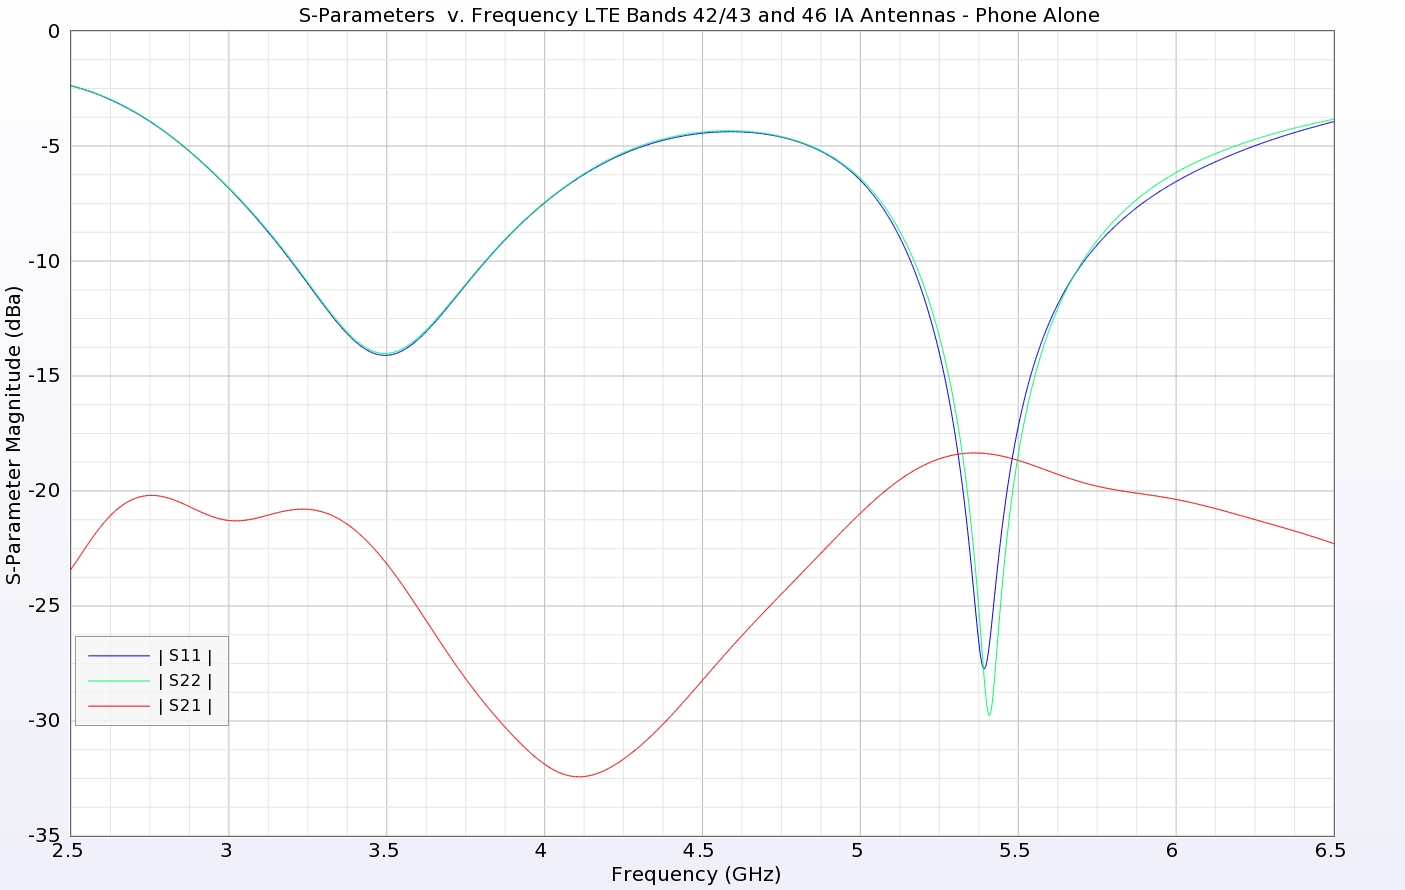 Figure 4: The S-parameters for antennas 1 and 2 are shown over all bands of operation of the device. There are two distinct operating regions: around 3.6 GHz and around 5.5 GHz. For both, the return loss is well below required levels while the isolation determined by S21 is down around -18 dB.